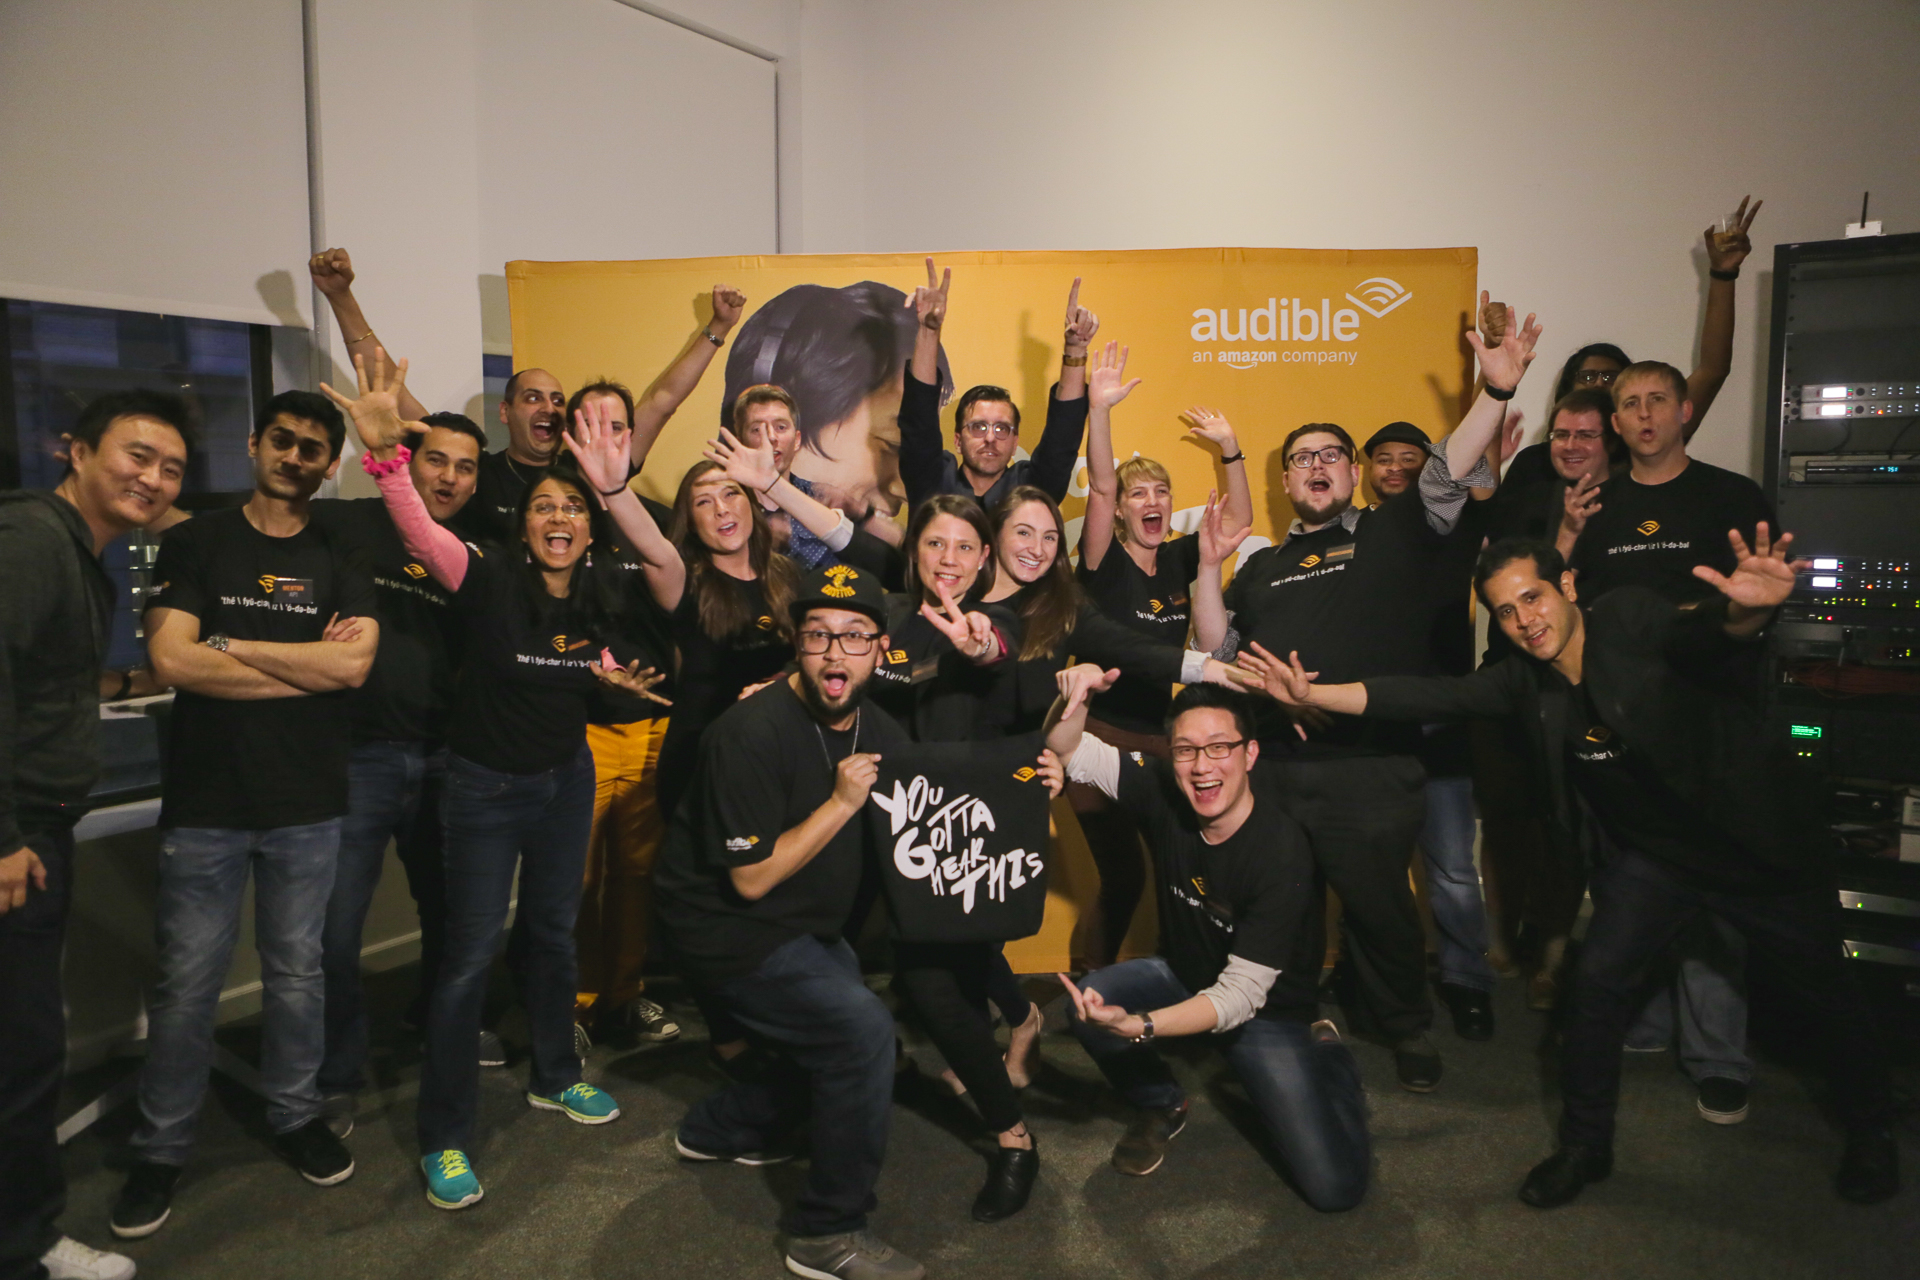 Team Audible at the Hackathon